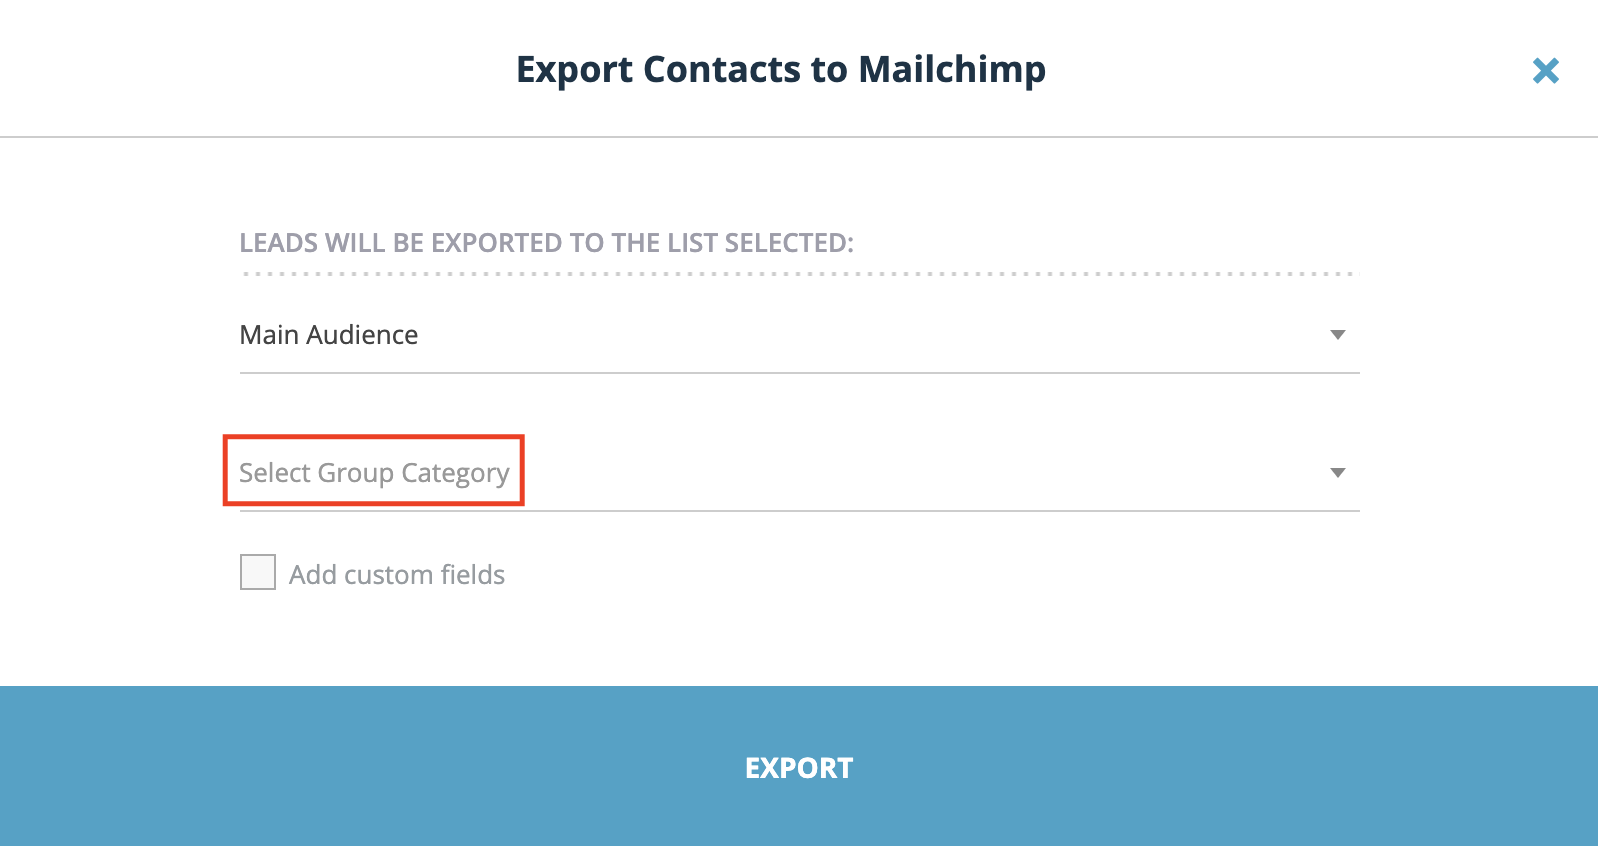 export-contacts-to-mailchimp-select-category-teamgate.png